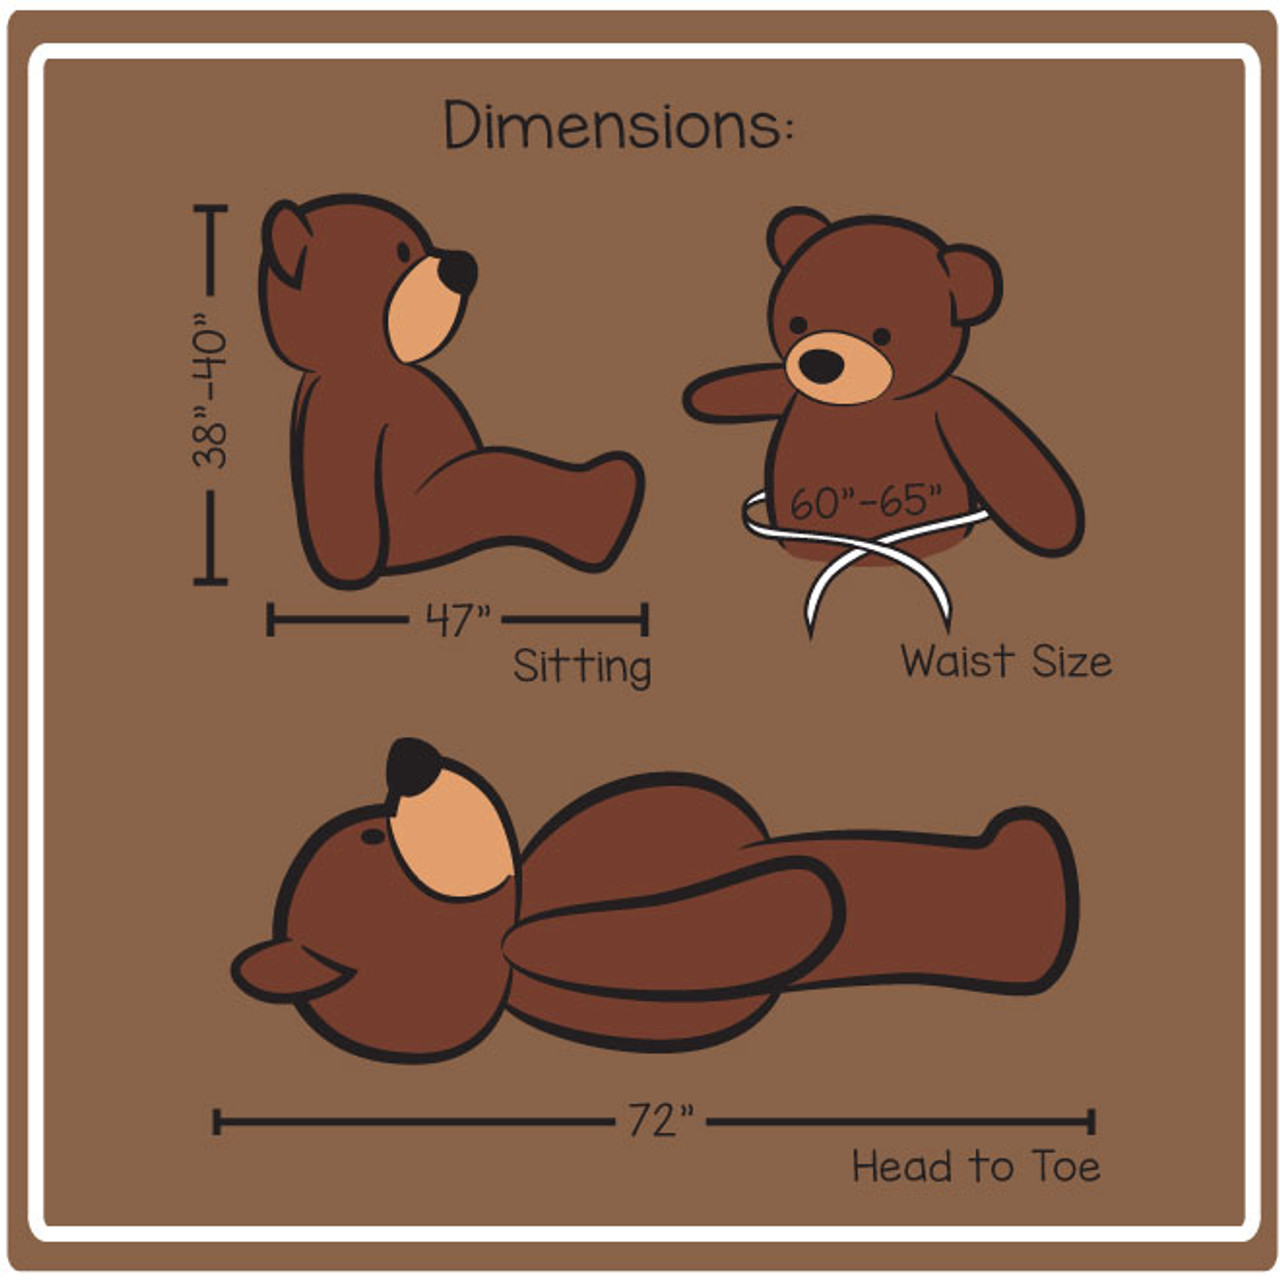 6 Foot Teddy Bear Dimensions